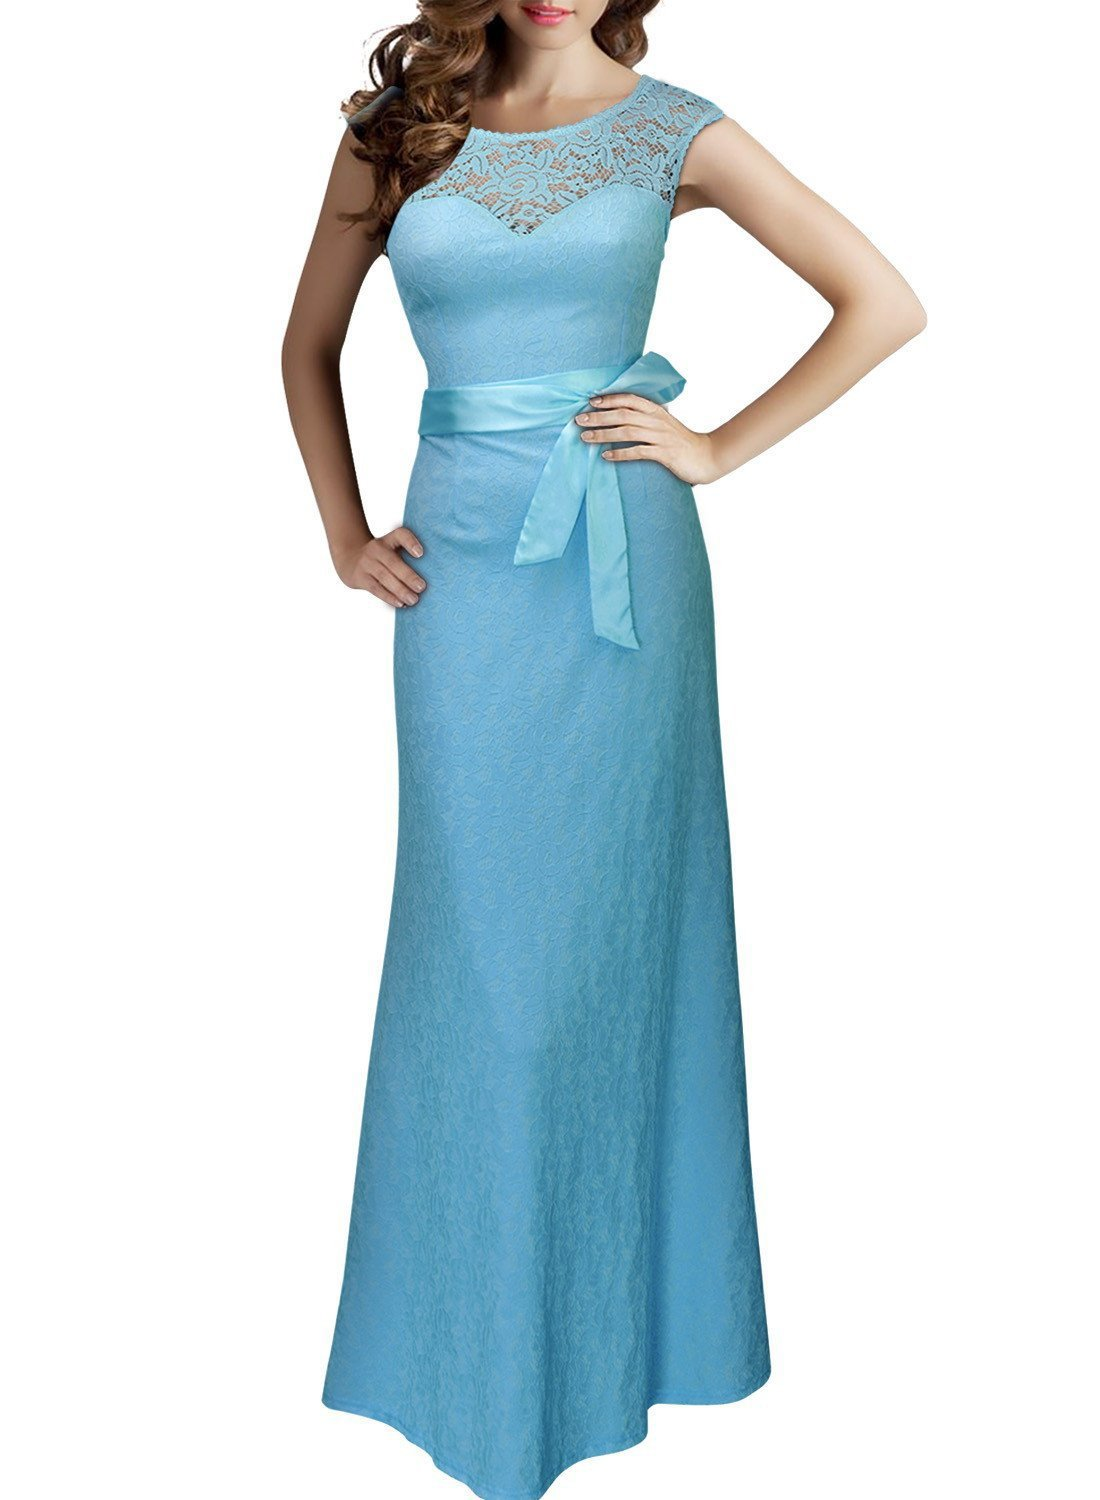 ThaliaDress Long Lace Evening Party Dresses Prom Gowns T264LF